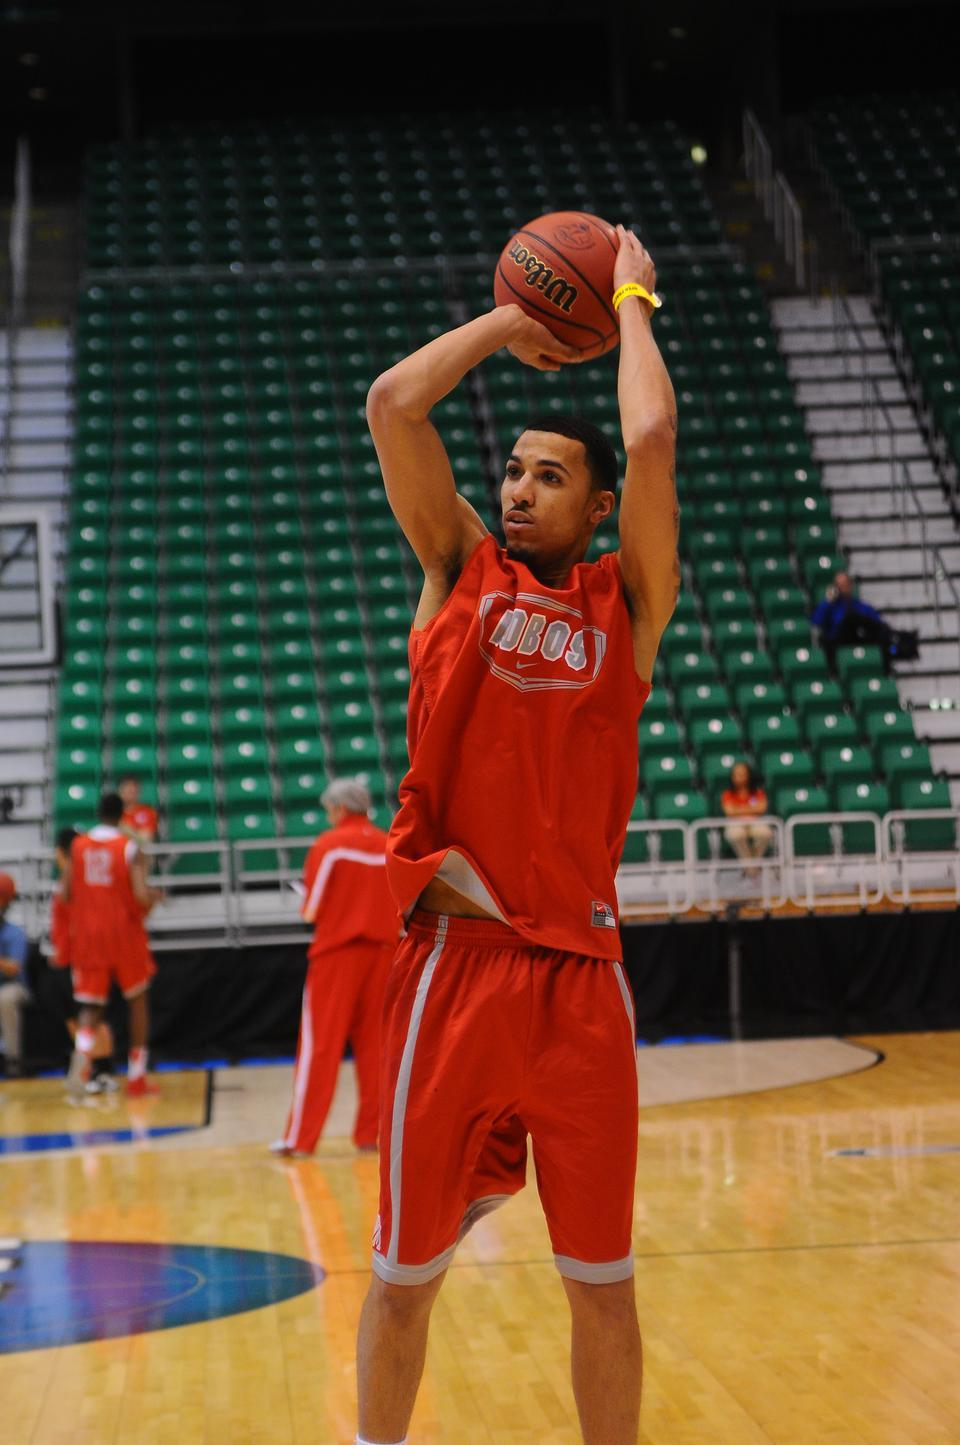 Mountain West Conference Player of the Year Kendall Williams hopes to finally lead New Mexico to the Sweet 16.